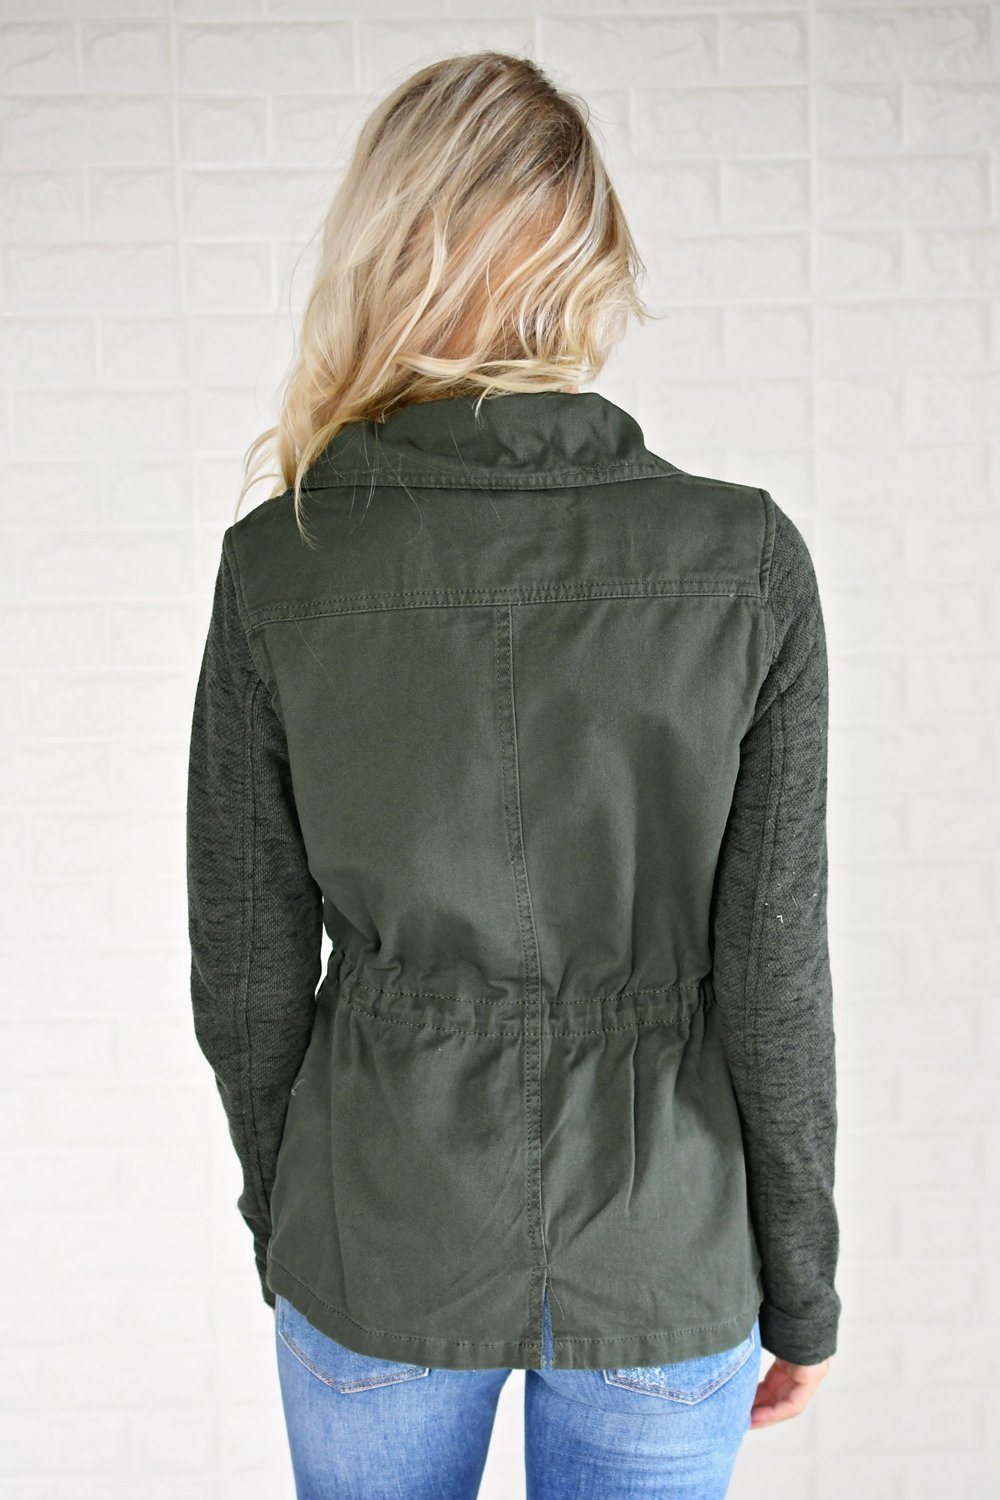 Essential Olive Utility Jacket